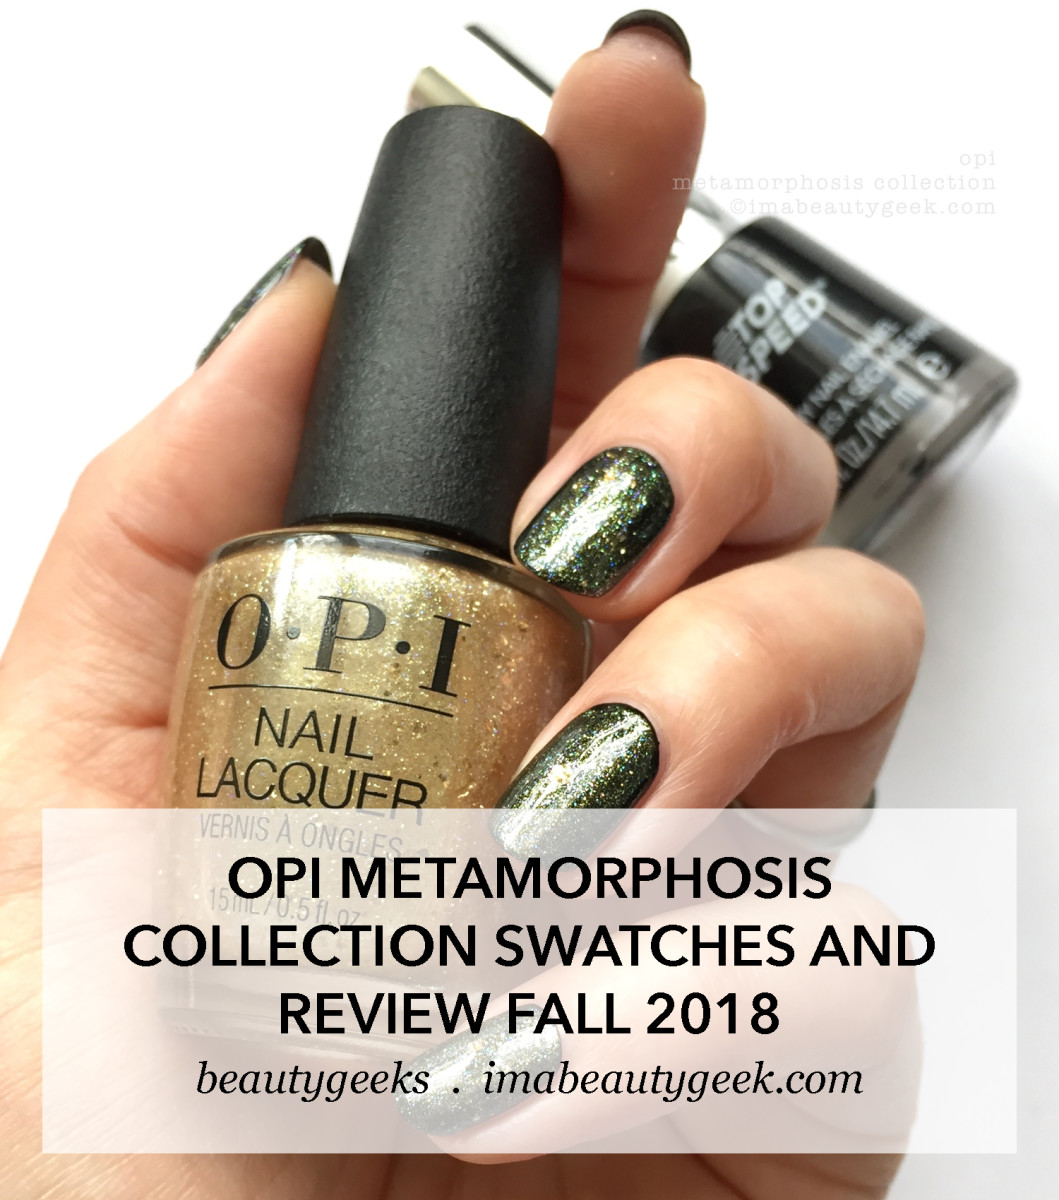 OPI Metamorphosis Collection Swatches Review Fall 2018_manigeek_beautygeeks